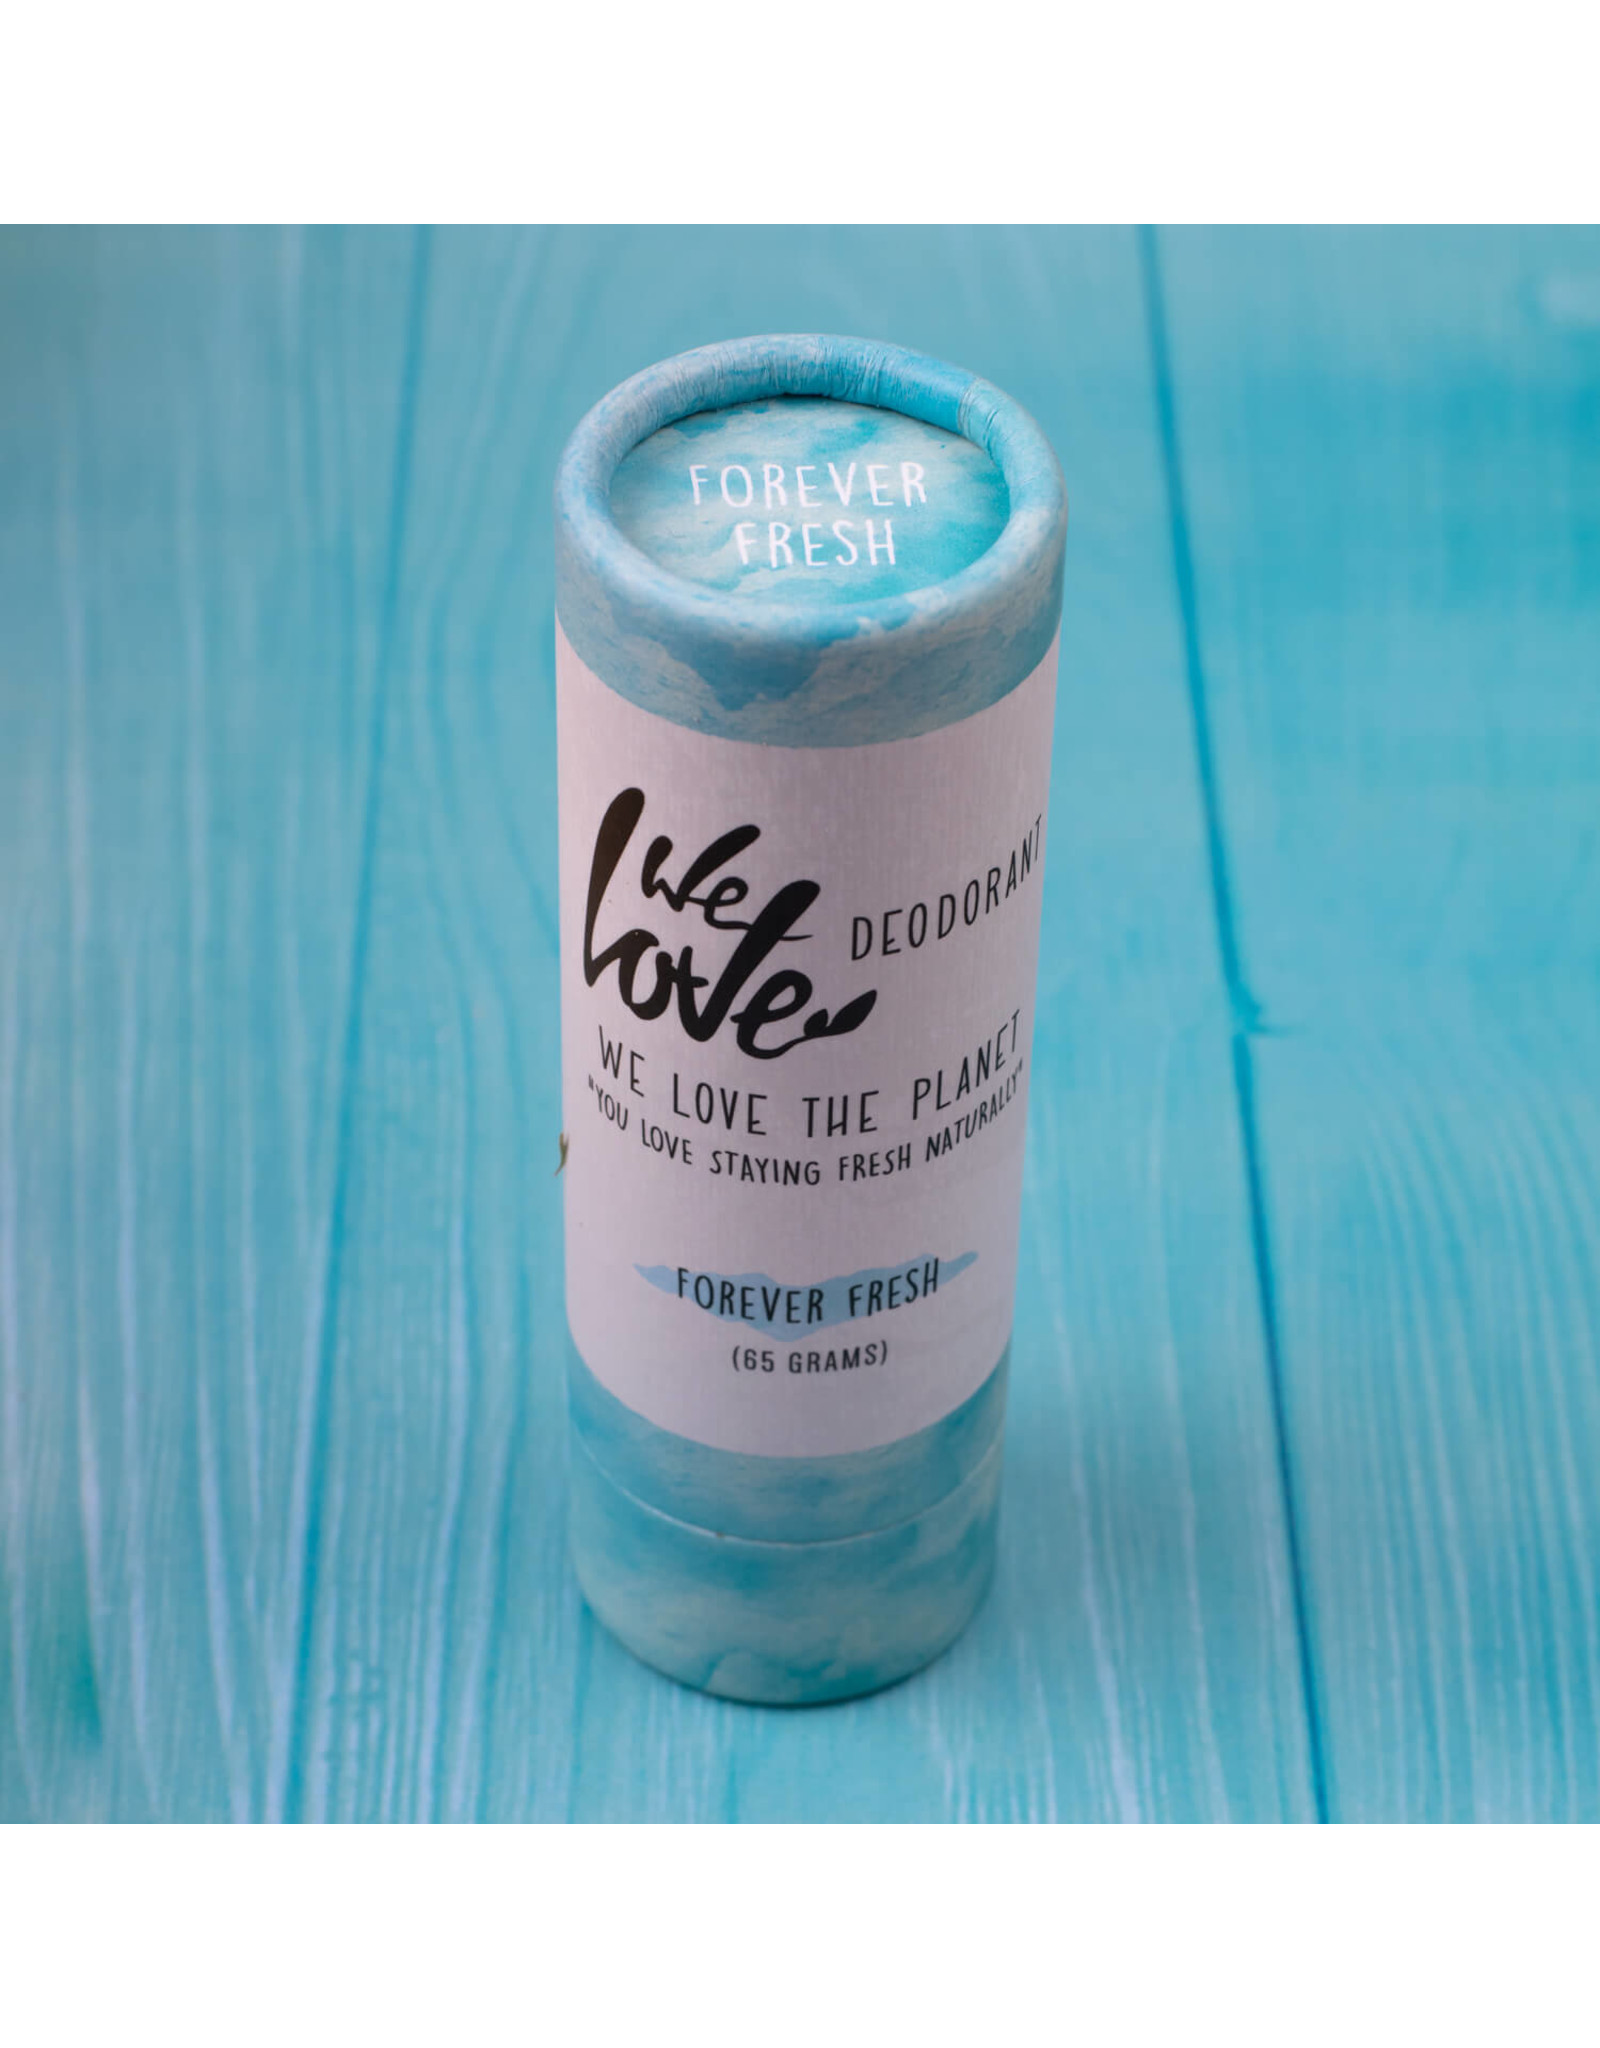 We Love the Planet Deodorant stick- Forever Fresh